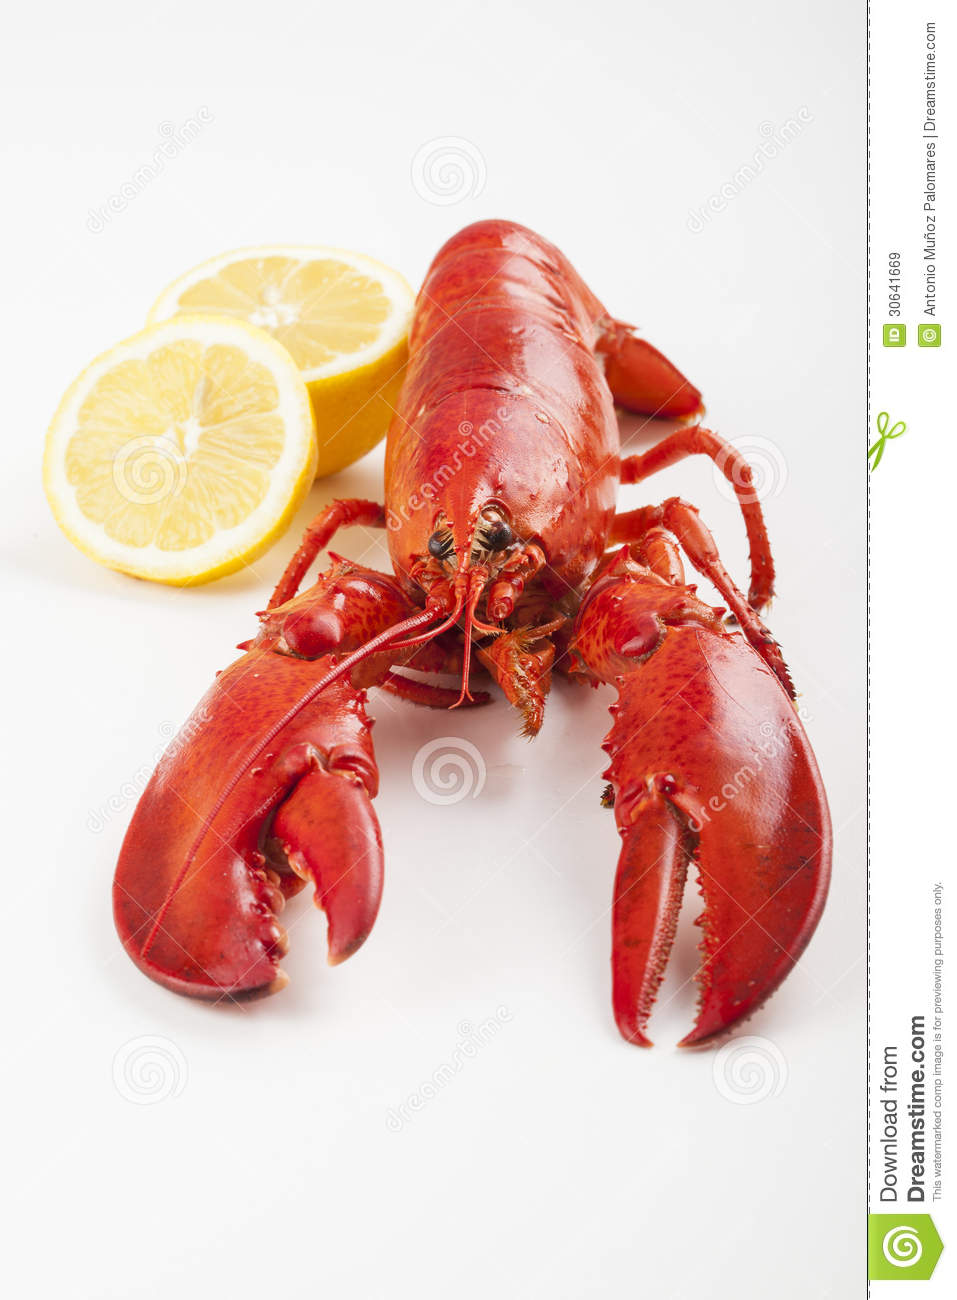 how to cook raw lobster